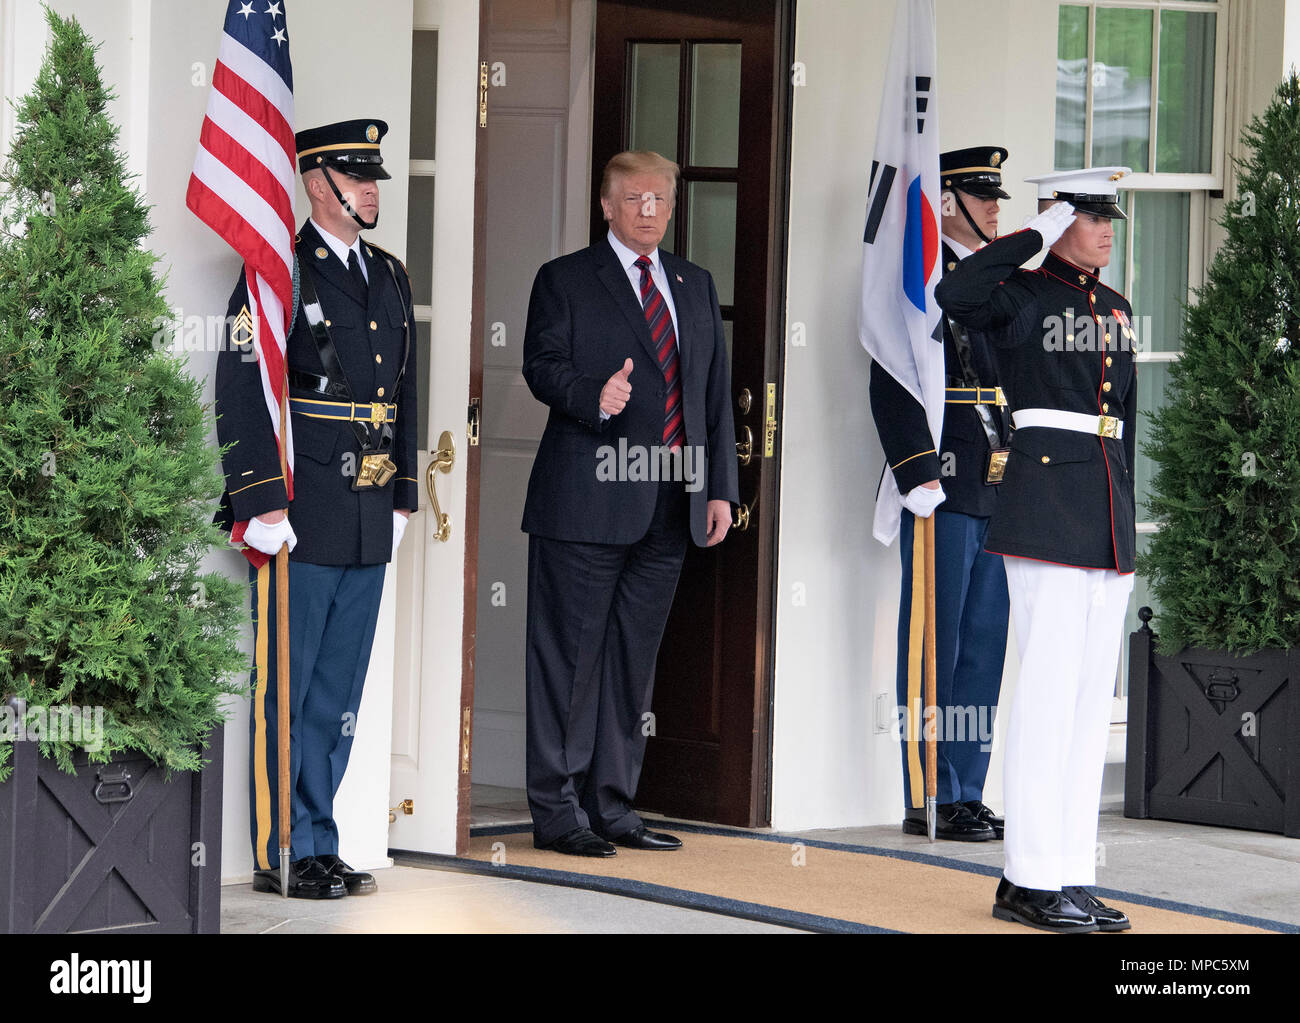 Singapore. 12th June, 2018. United States President Donald J. Trump gestures towards the assembled press as he prepares to welcome President Moon Jae-in of South Korea for talks at the White House in Washington, DC on Tuesday, May 22, 2018. The two leaders are meeting ahead of President Trump's scheduled summit with Kim Jung-un of North Korea which is tentatively scheduled for June 12, 2018 in Singapore. Credit: Ron Sachs/CNP | usage worldwide Credit: dpa/Alamy Live News - Stock Image